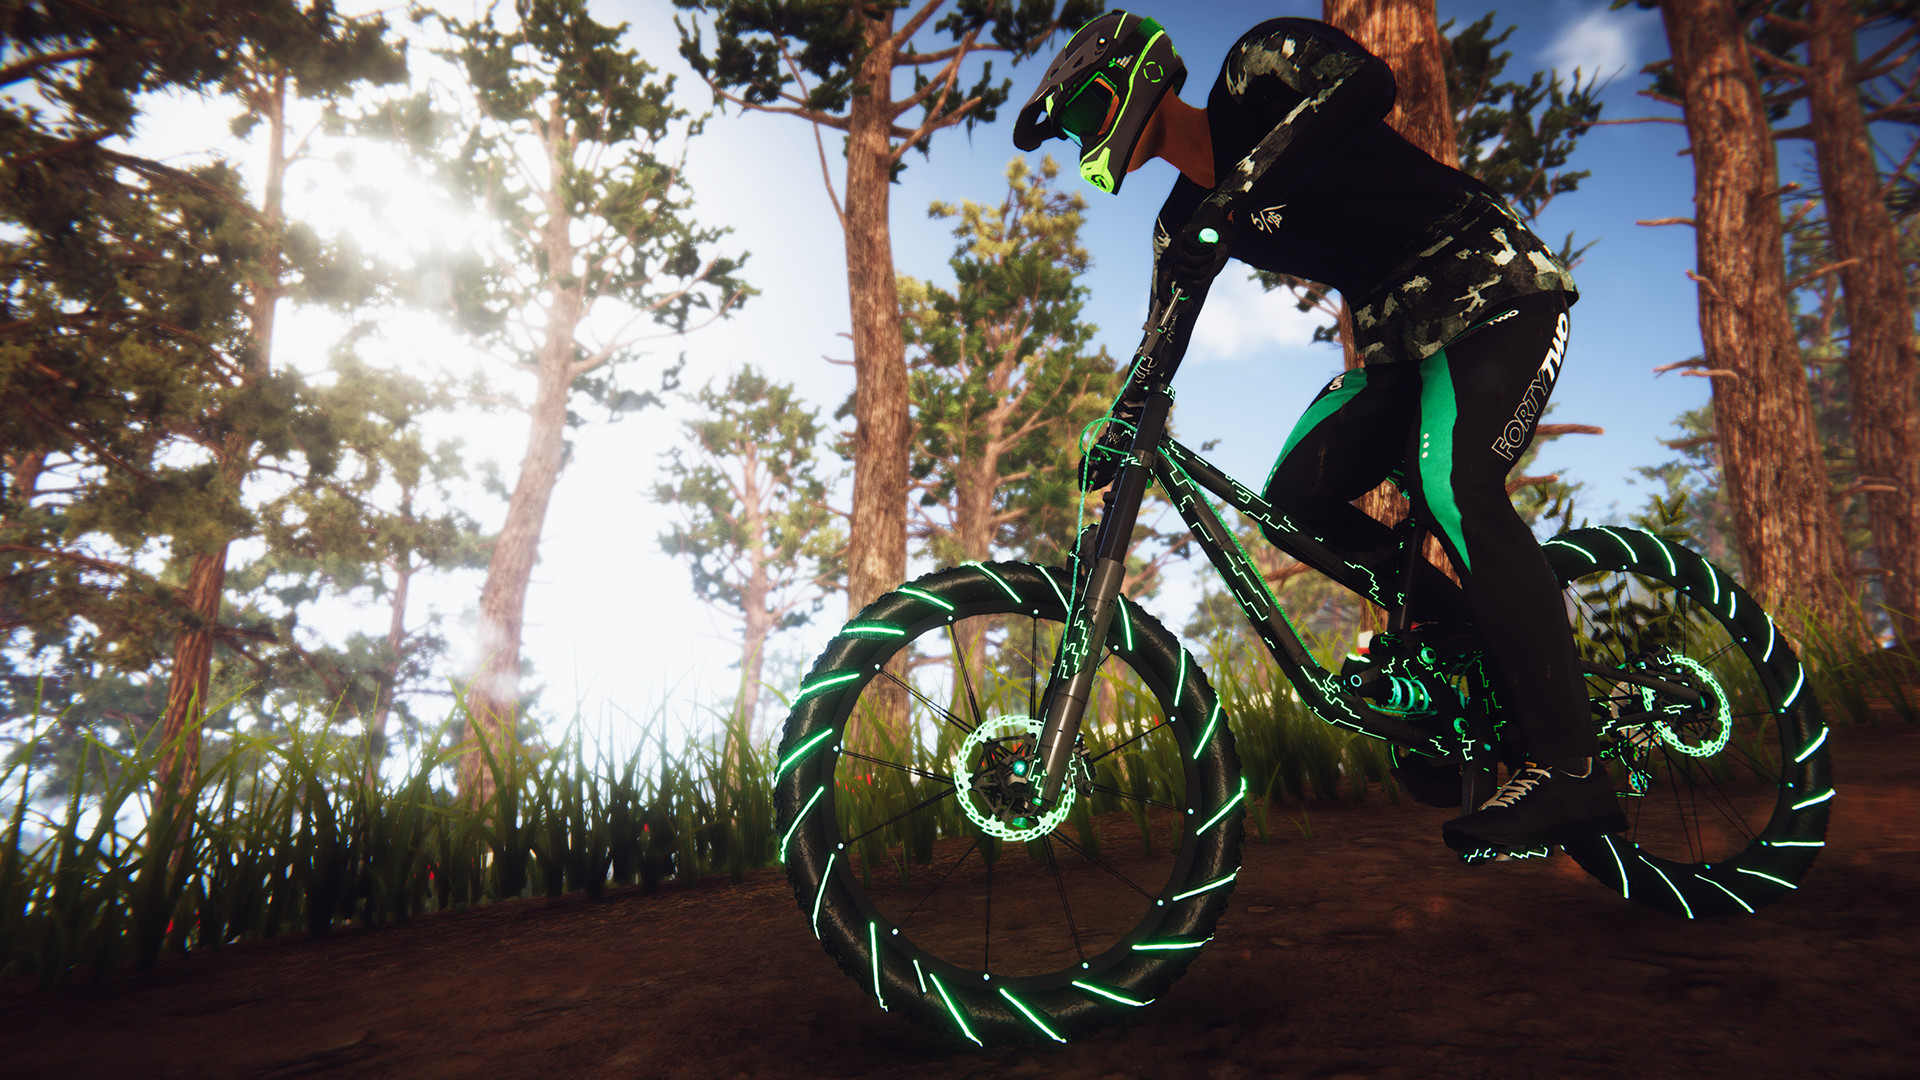 Descenders: in arrivo l'edizione fisica su PS4 e Switch thumbnail